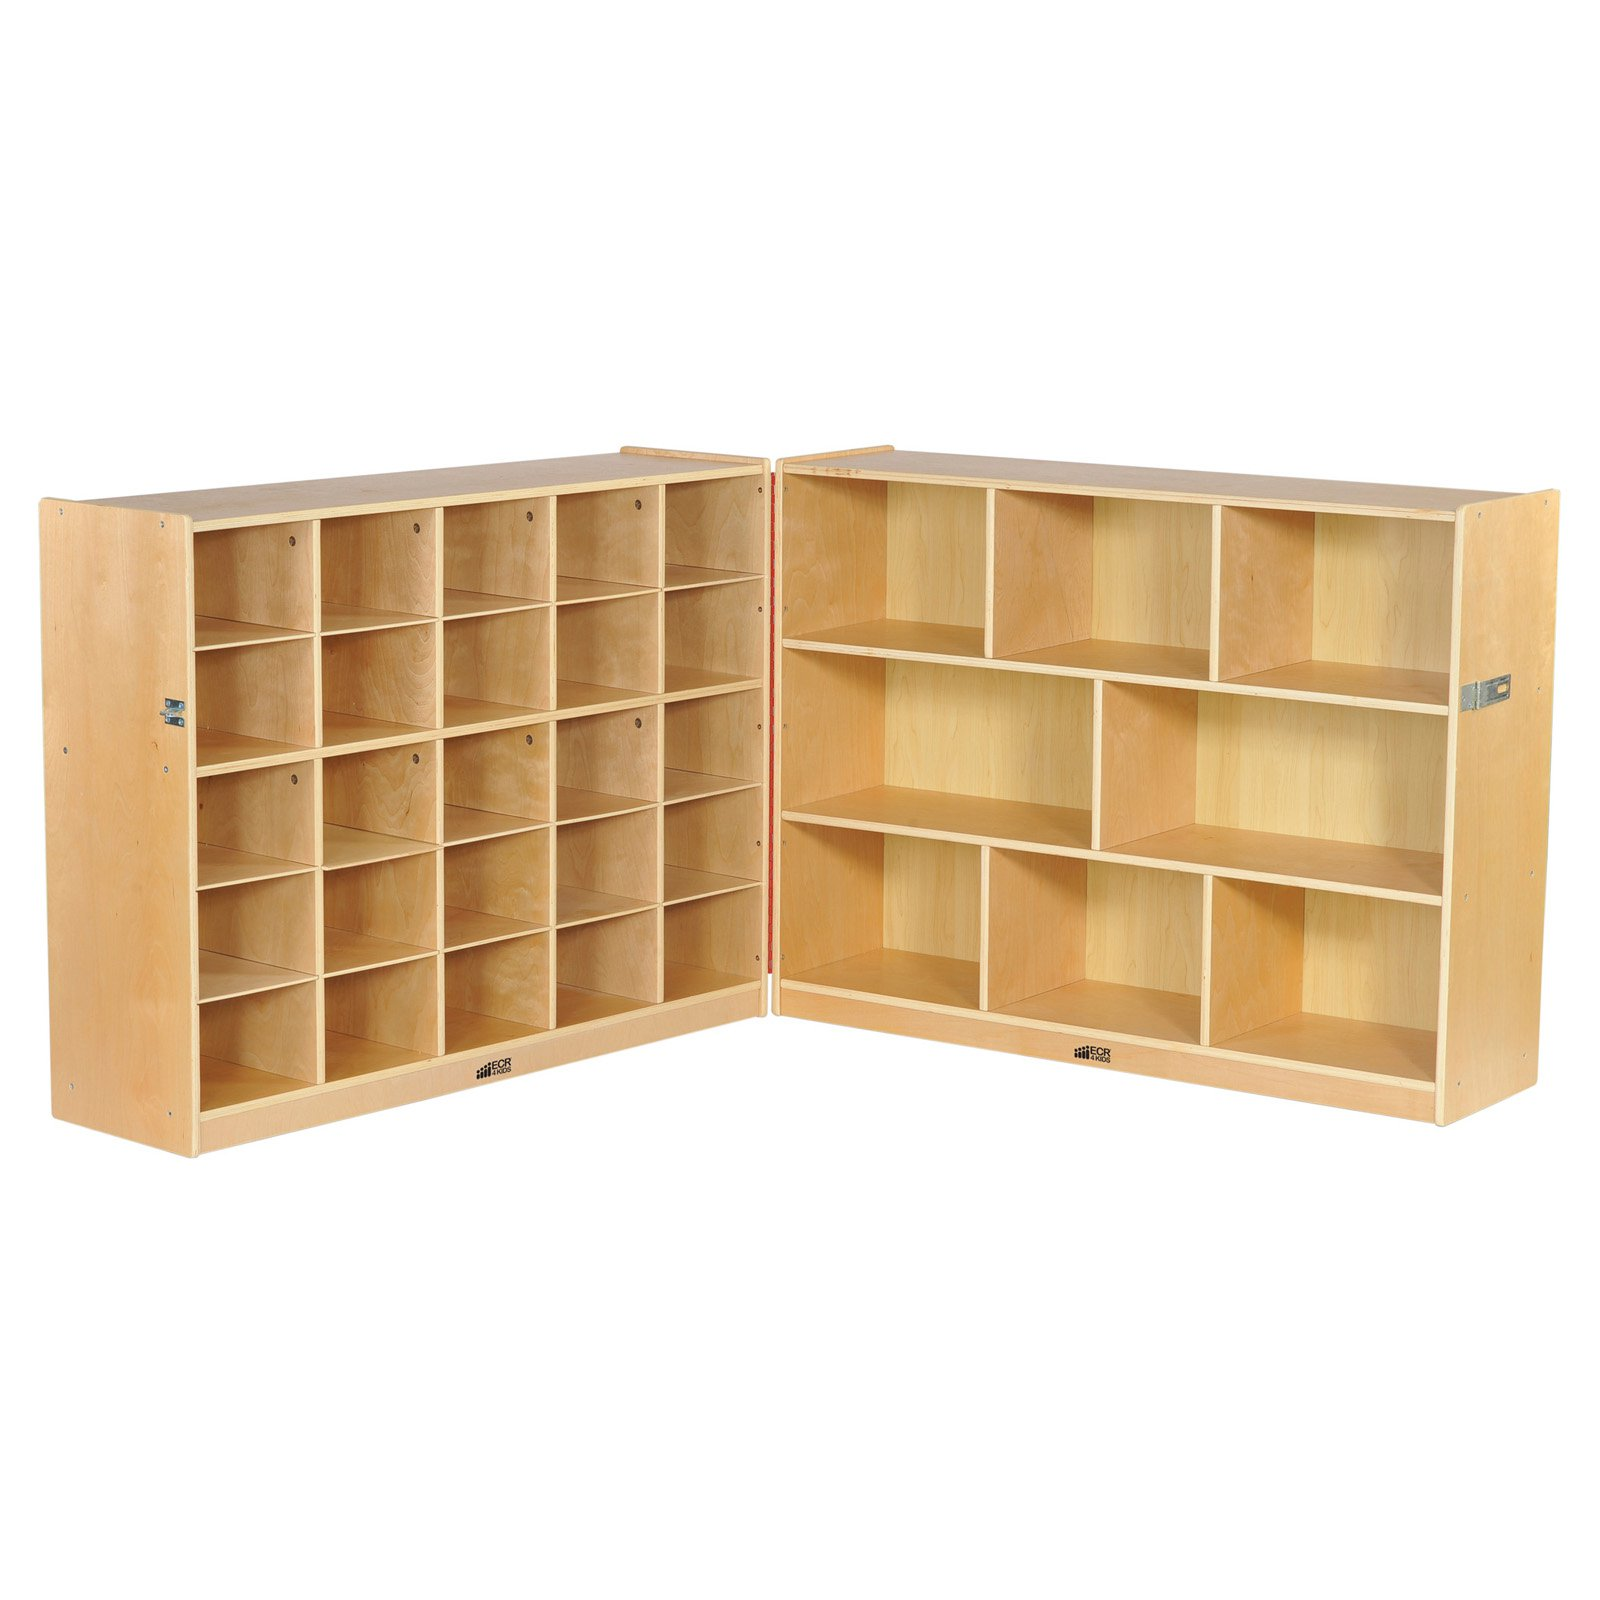 "Fold & Lock 25-Tray Cabinet and 36"" Storage with Bins"